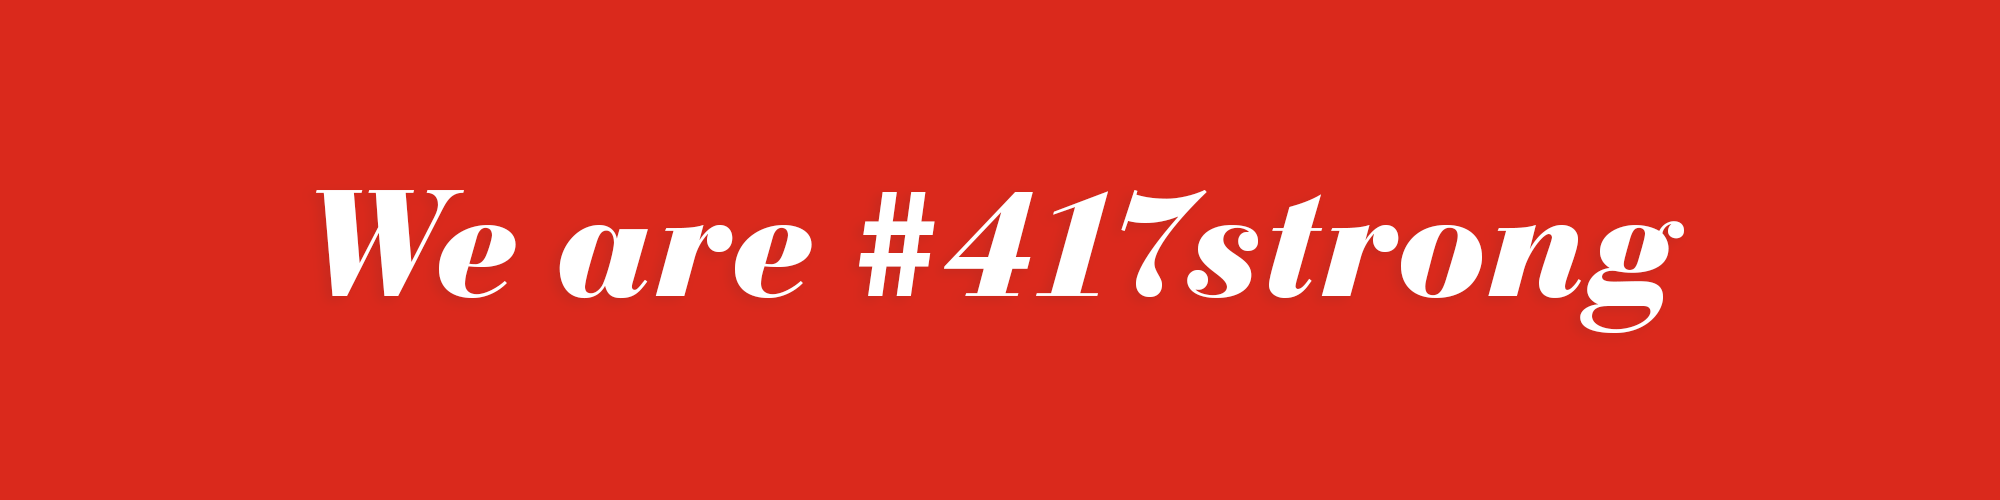 We are #417strong